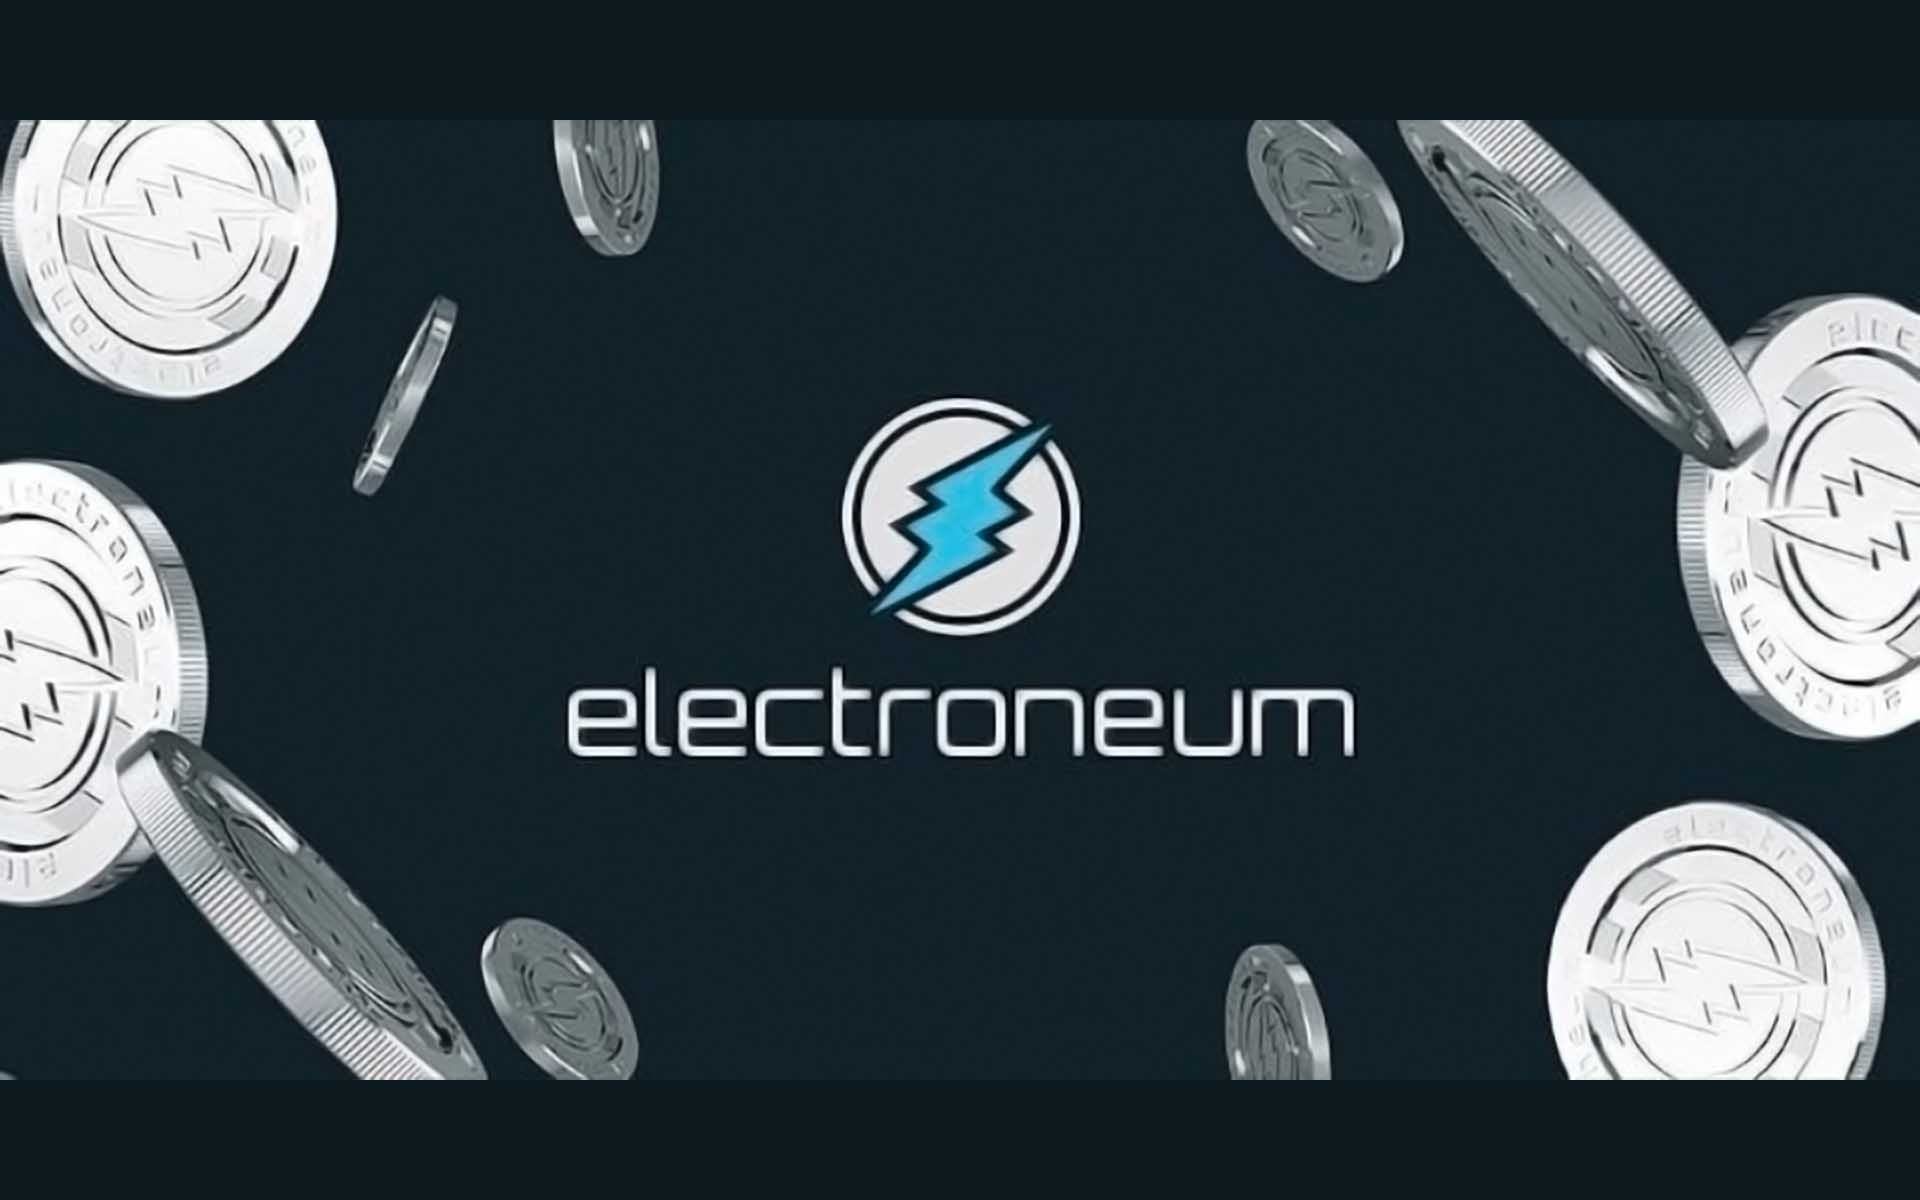 Electroneum – The Ultimate Platform for Serious Crypto Lovers